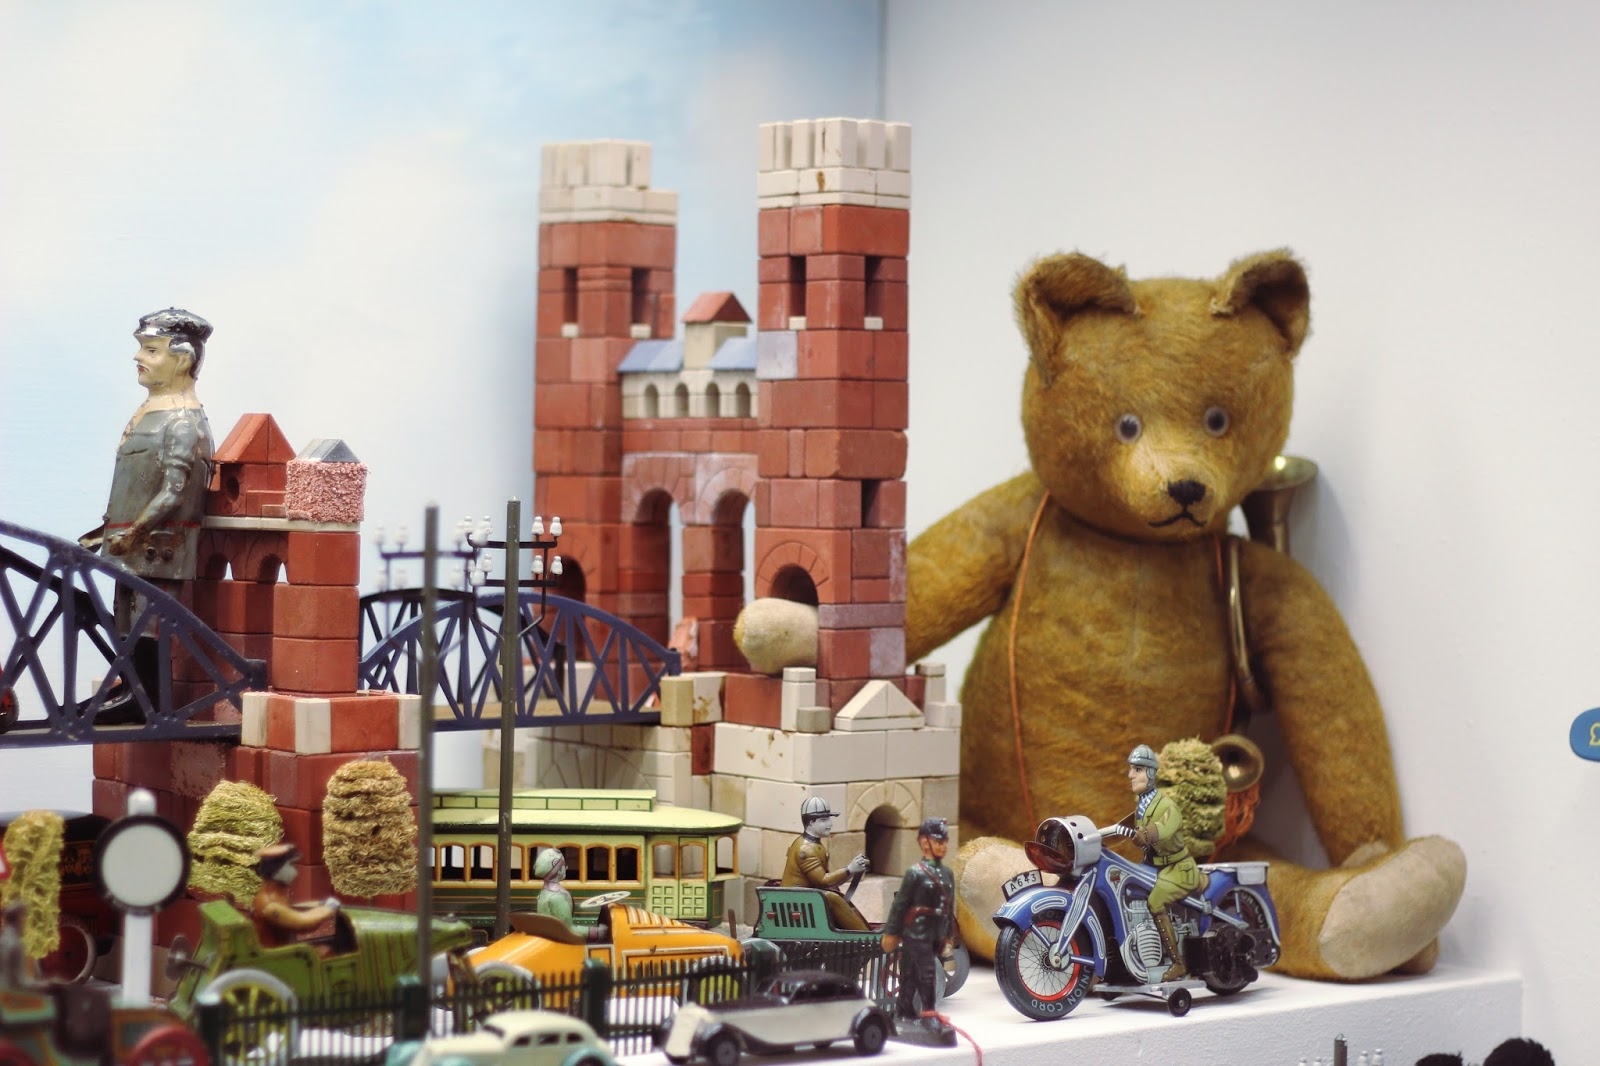 filipa canic blog, youarethepoet, you are the poet blog, toy museum, toy museum munich,